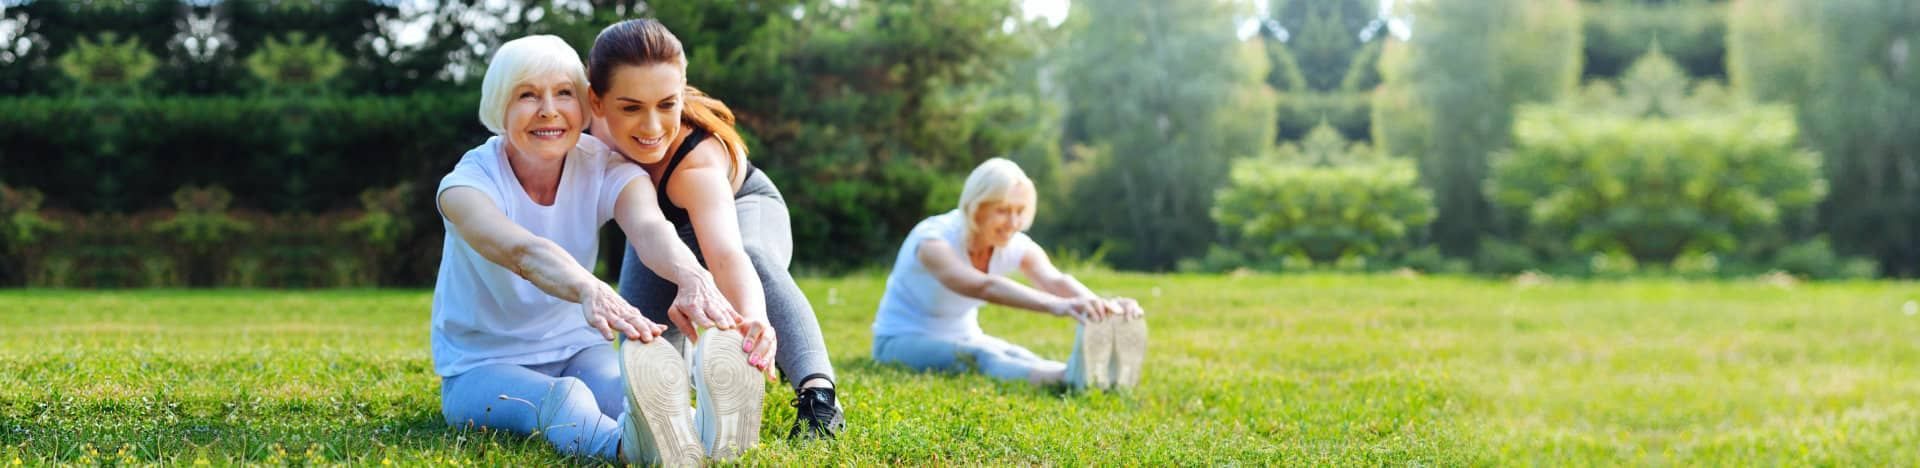 woman helping old woman to excercise